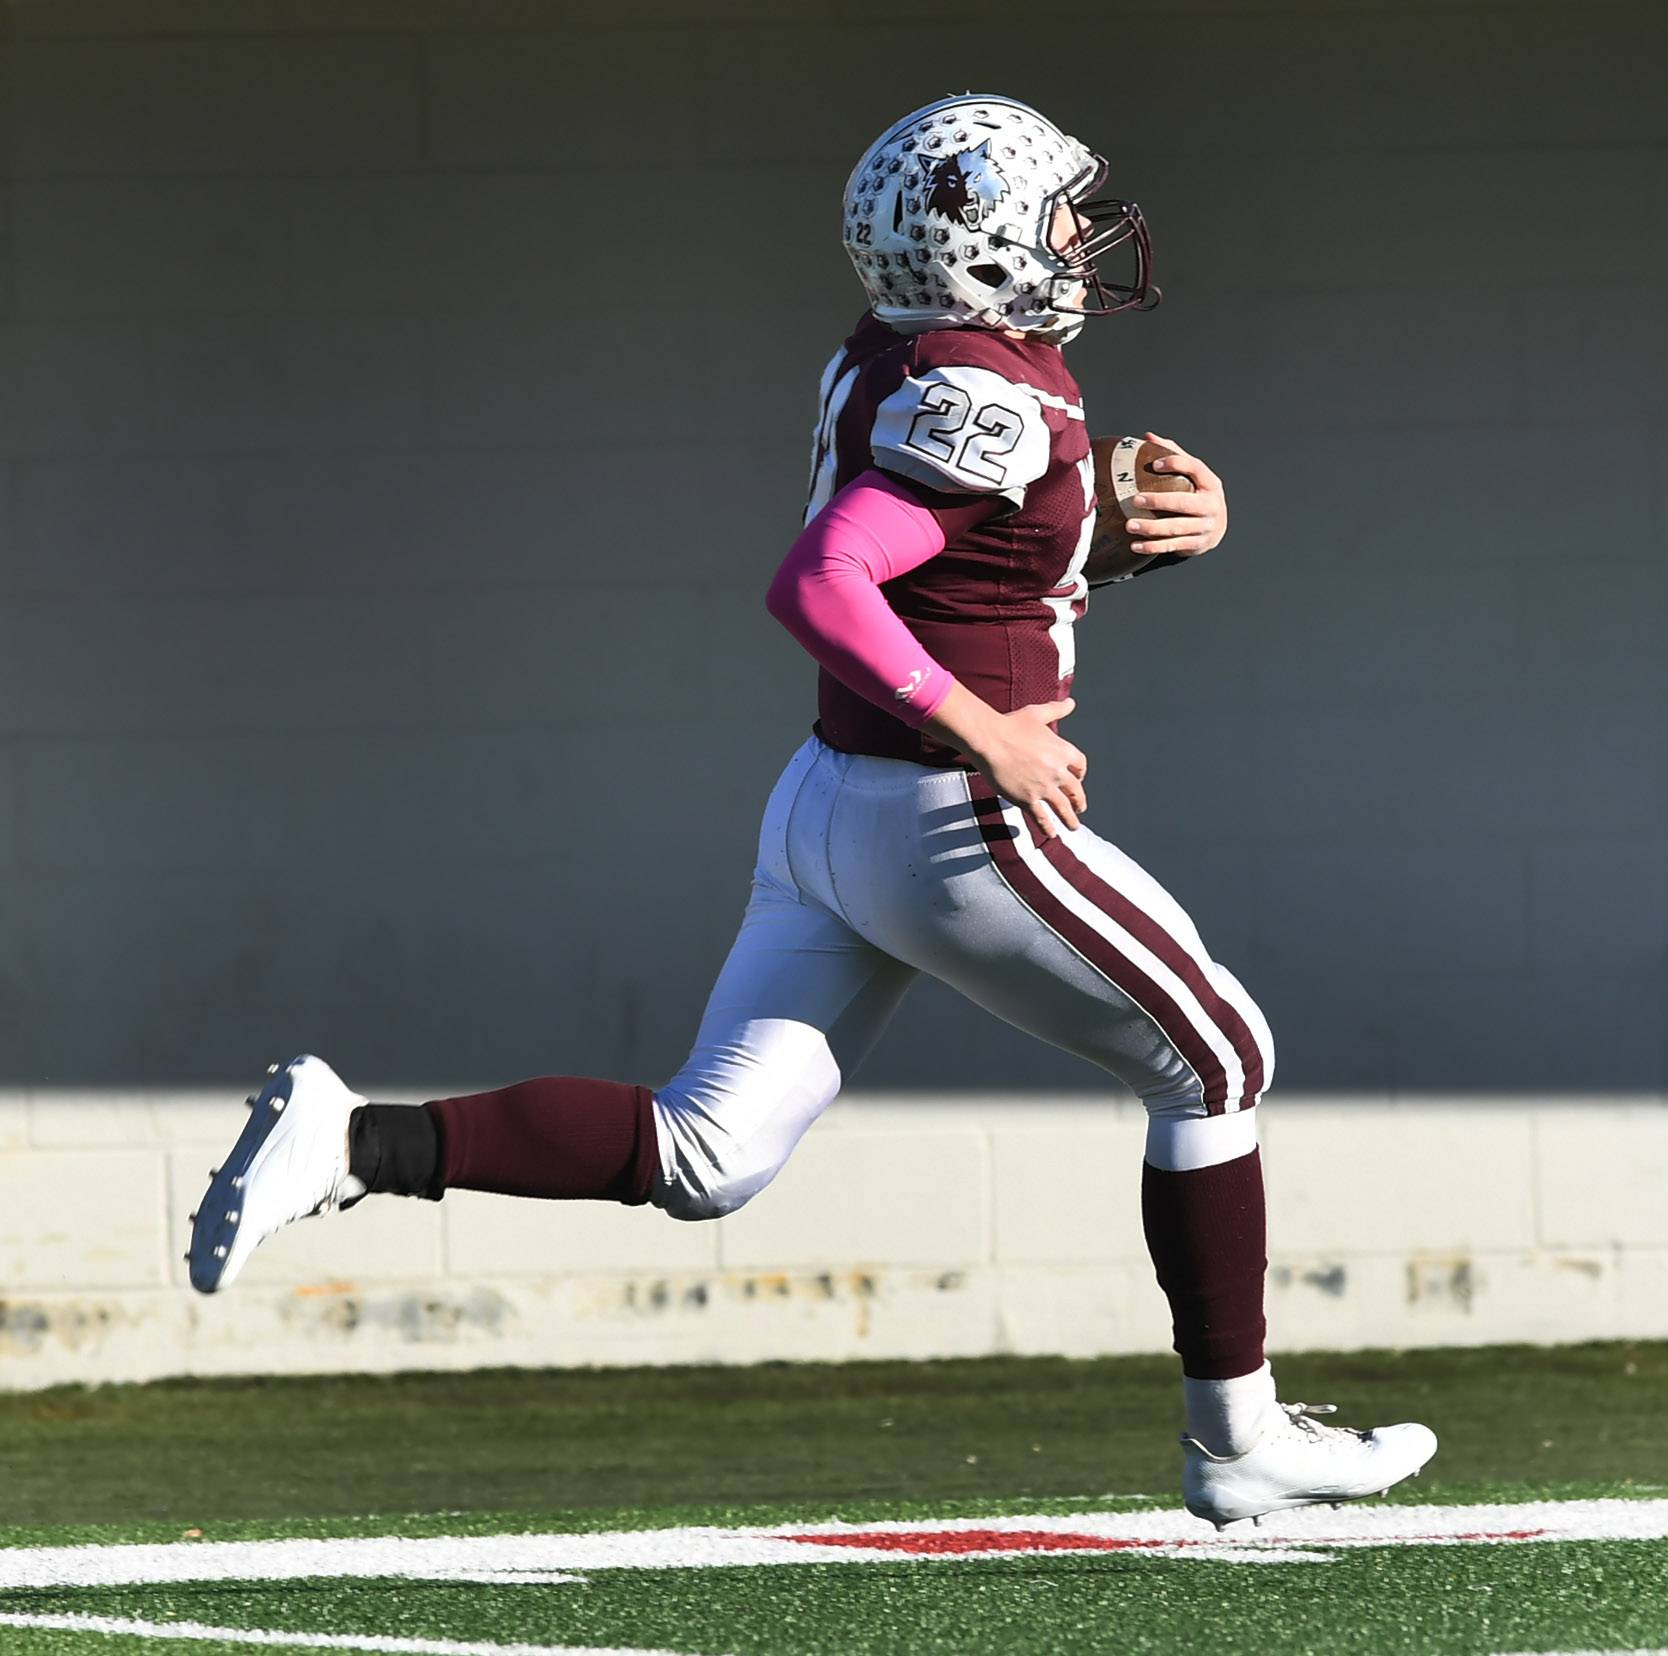 Prairie Ridge's Samson Evans carries for a touchdown on 78-yard punt return during the Class 6A championship game at Huskie Stadium in DeKalb Saturday.